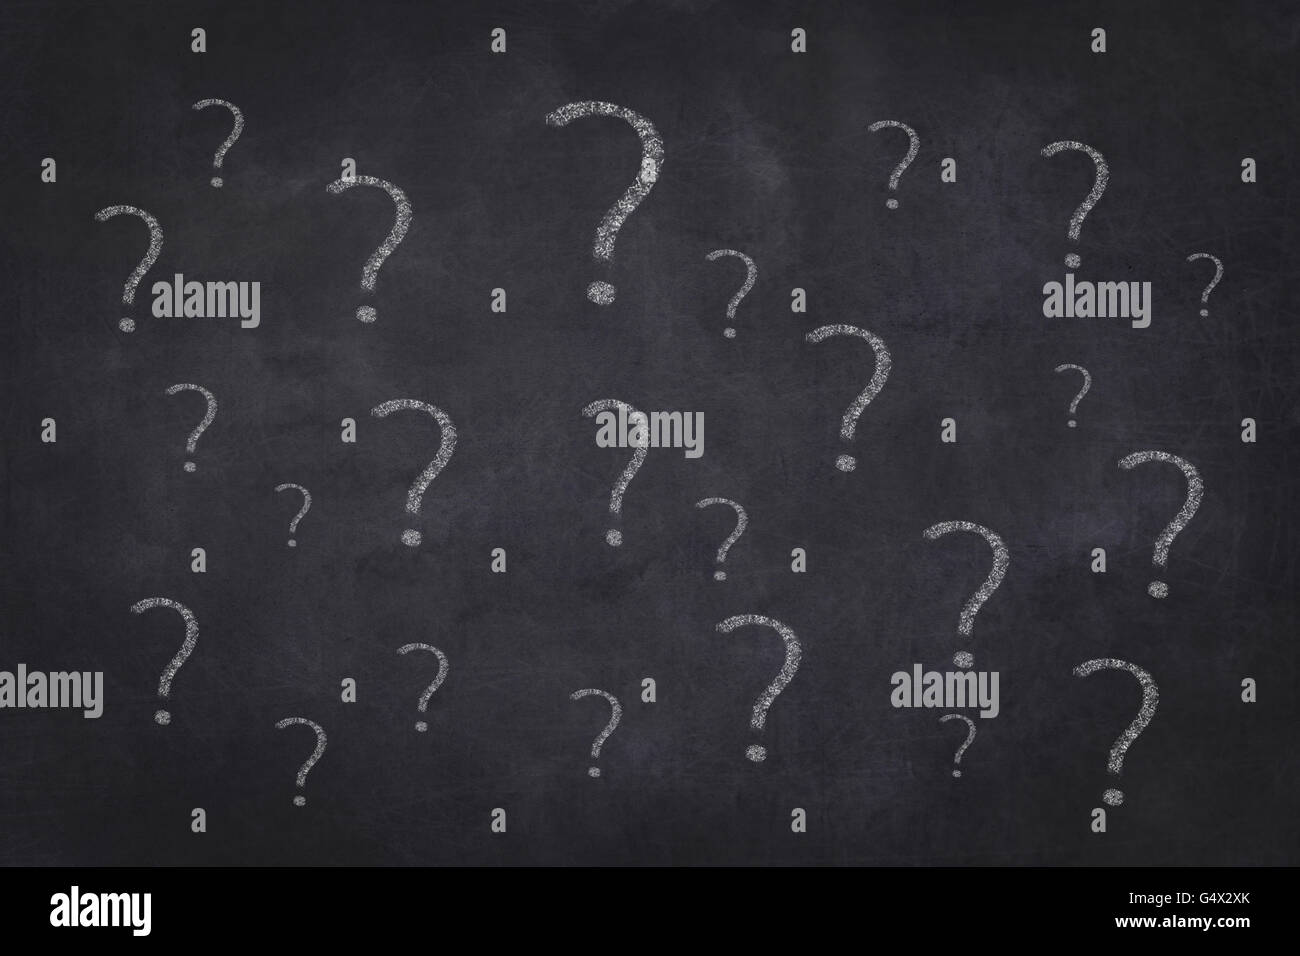 many question marks on chalkboard background - Stock Image